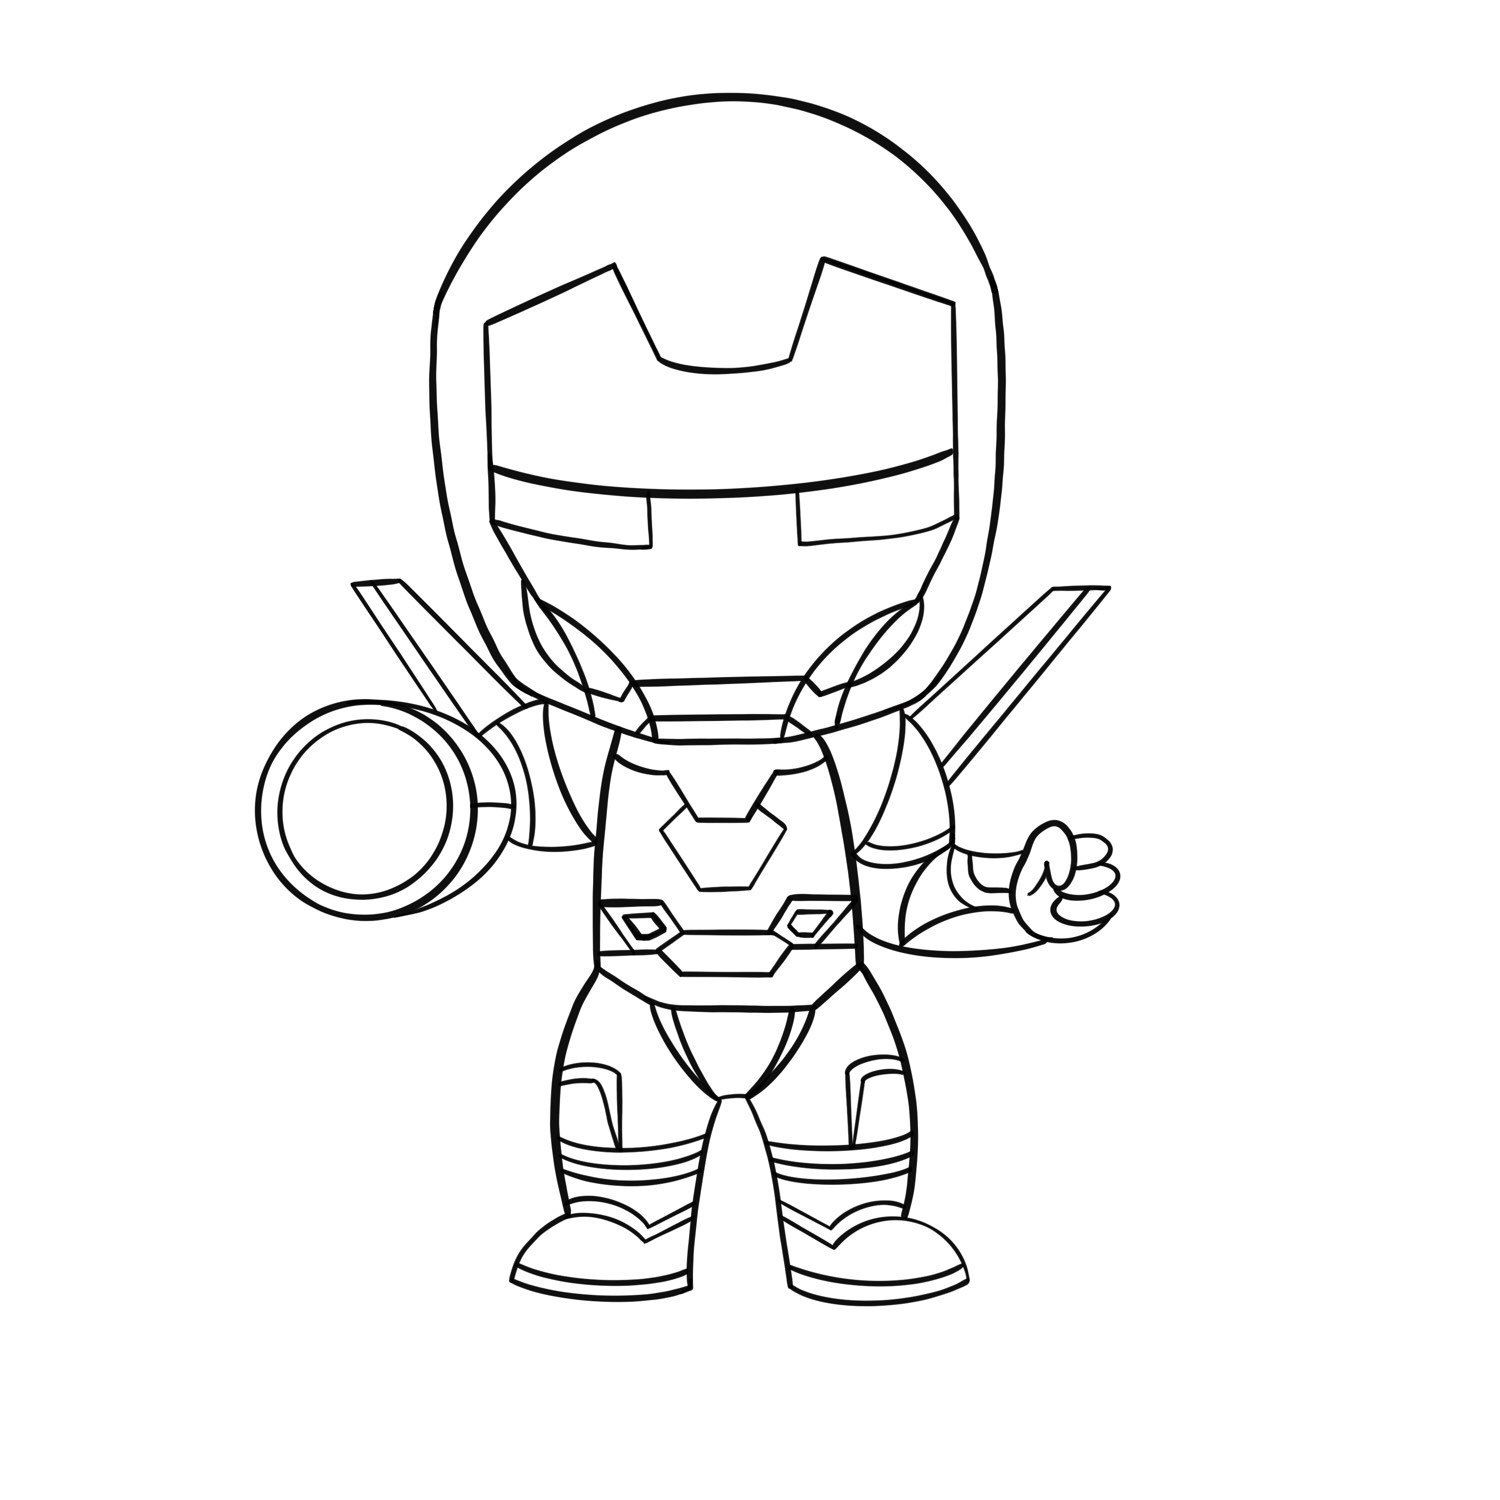 Png Iron Man Captain America Captain Marvel Black Widow Etsy In 2021 Marvel Coloring Iron Man Drawing Avengers Coloring Pages